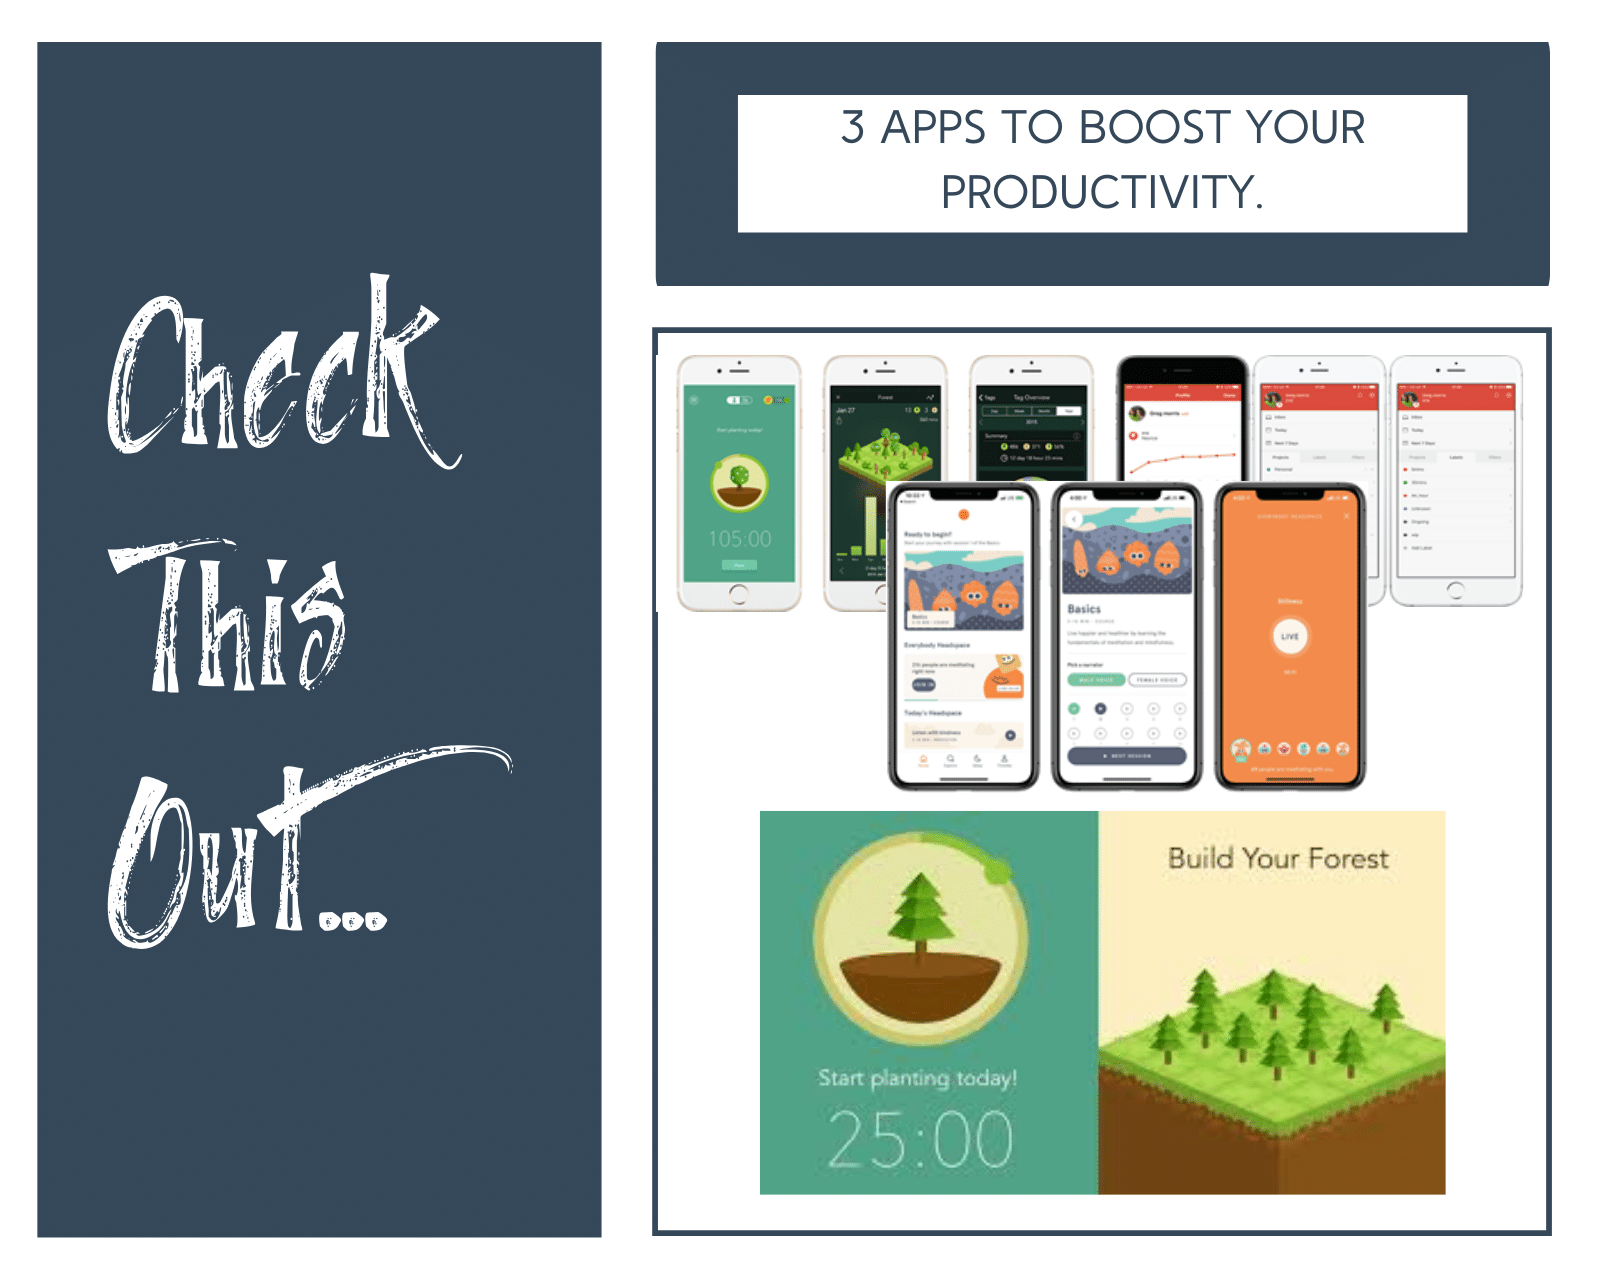 3 Apps to Boost Your Productivity